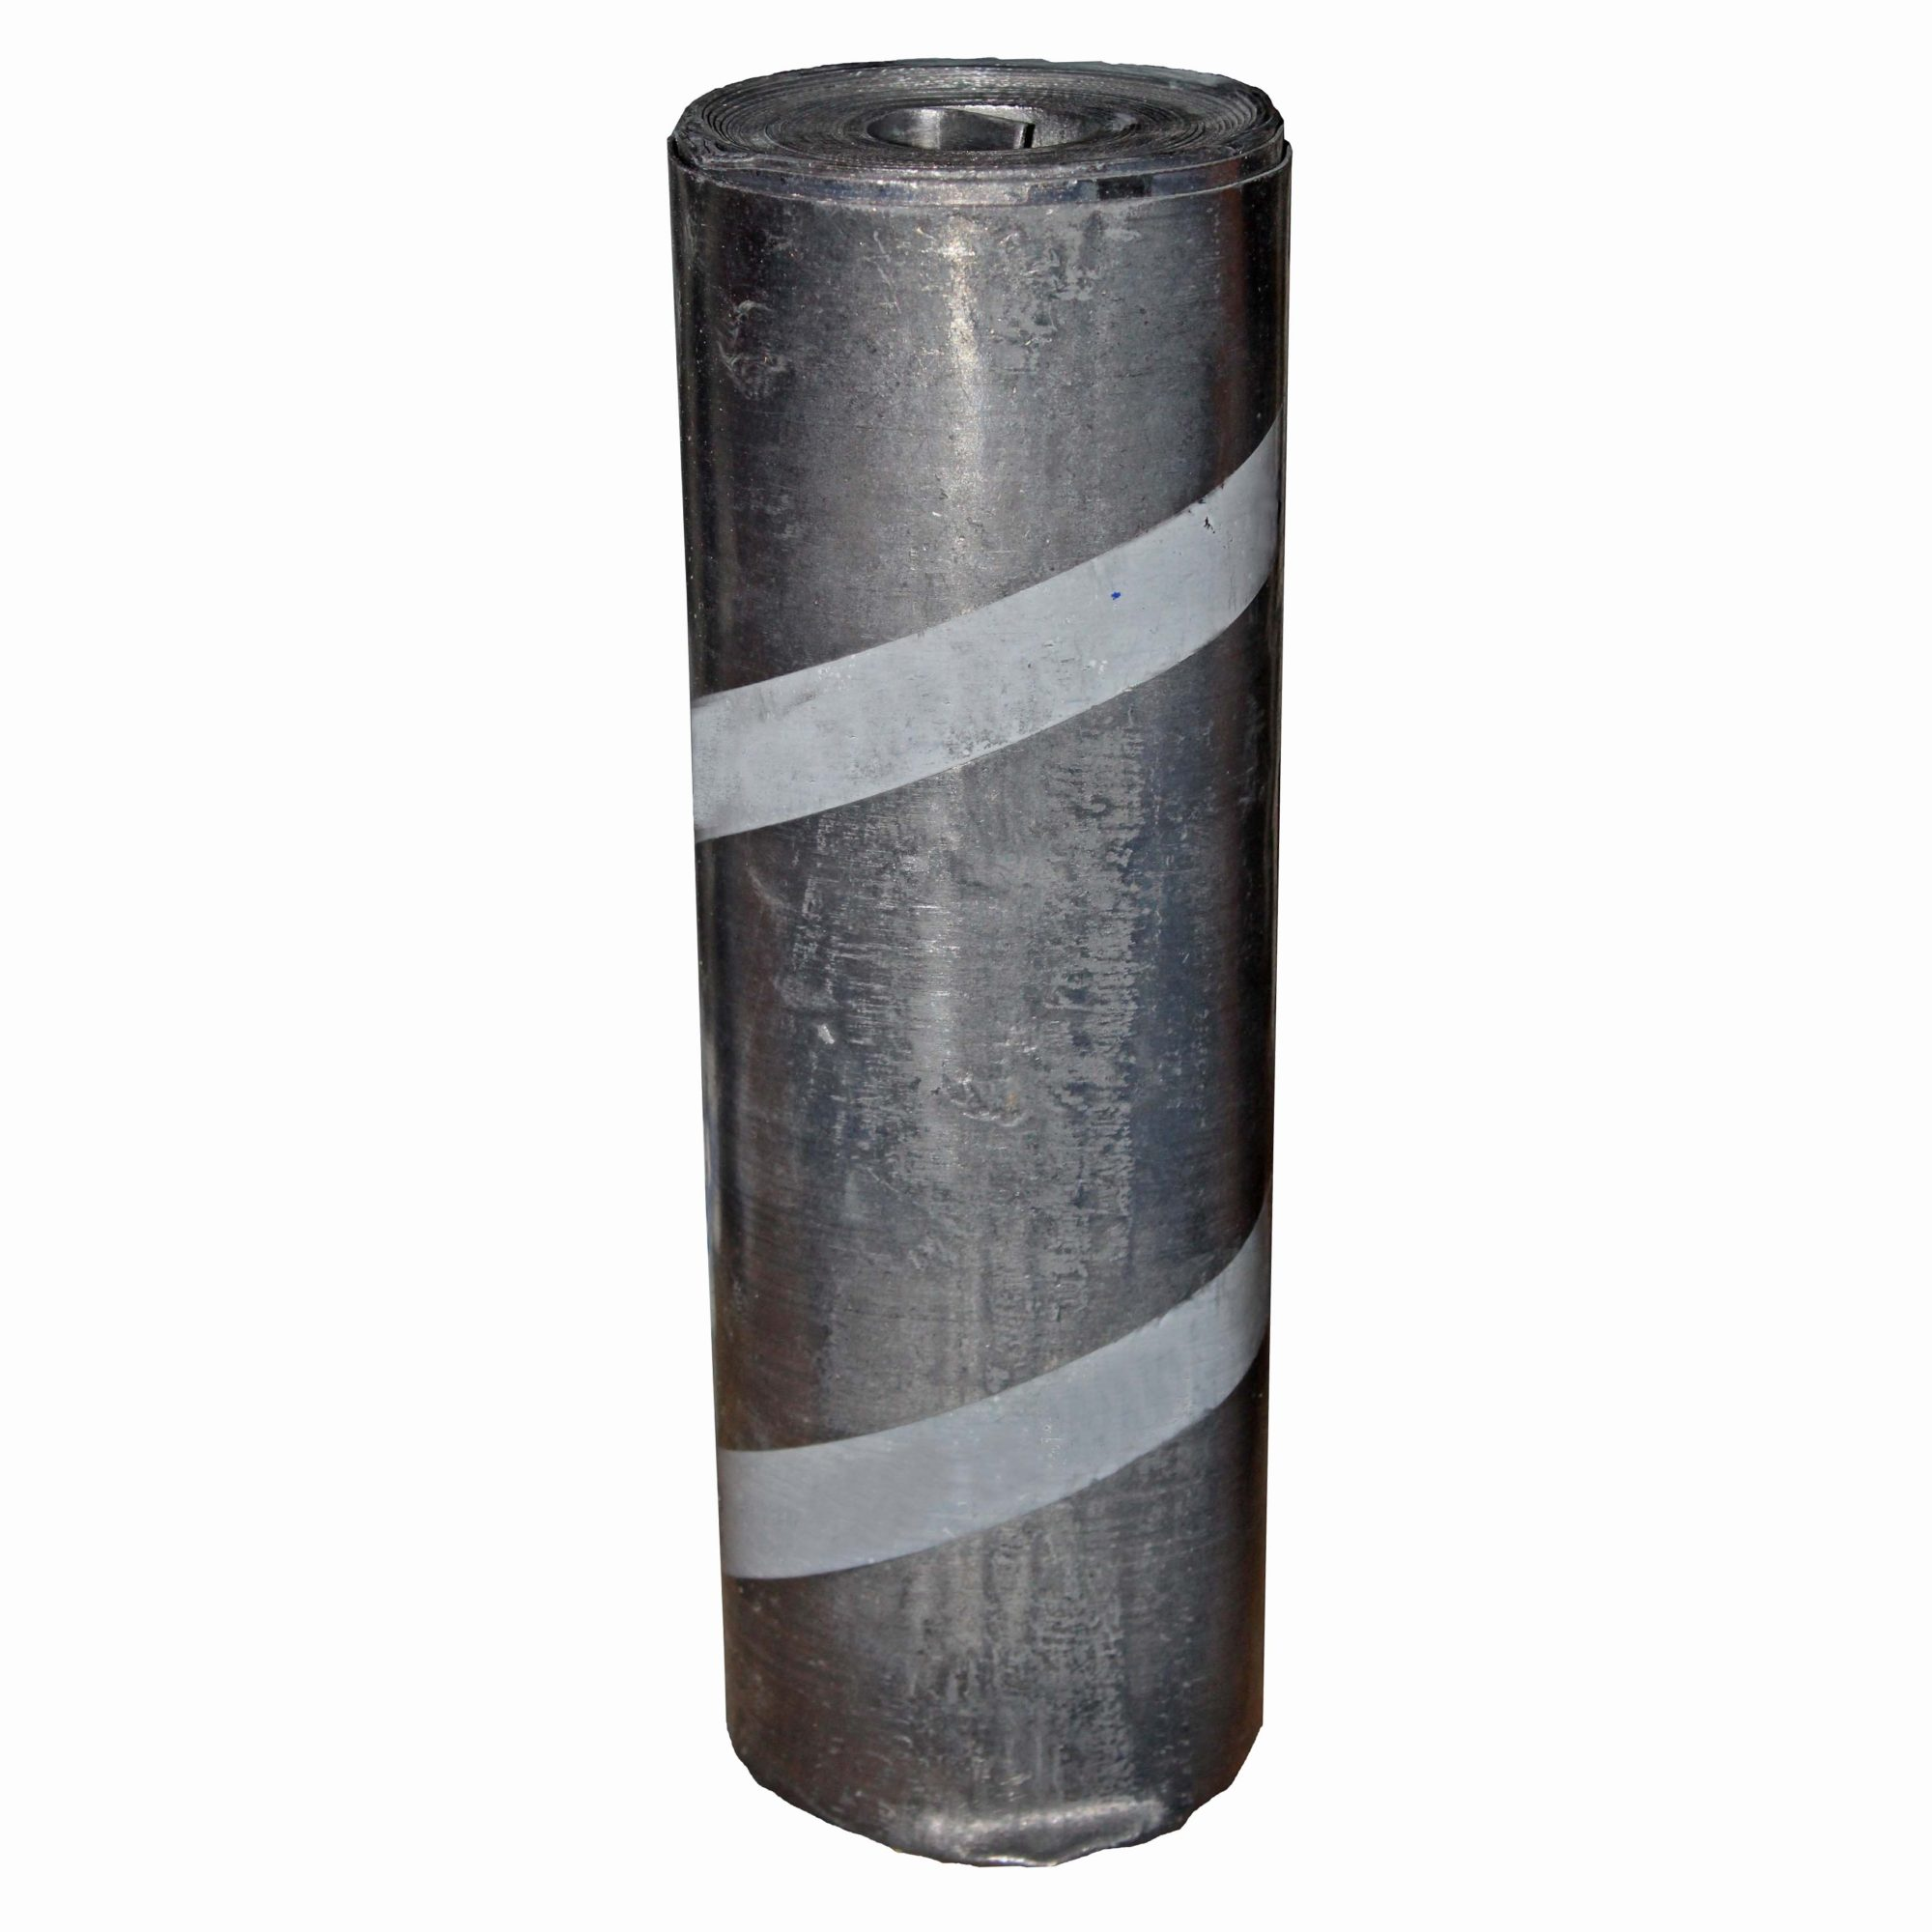 LEAD ROLL FLASHING – 50LB ROLL